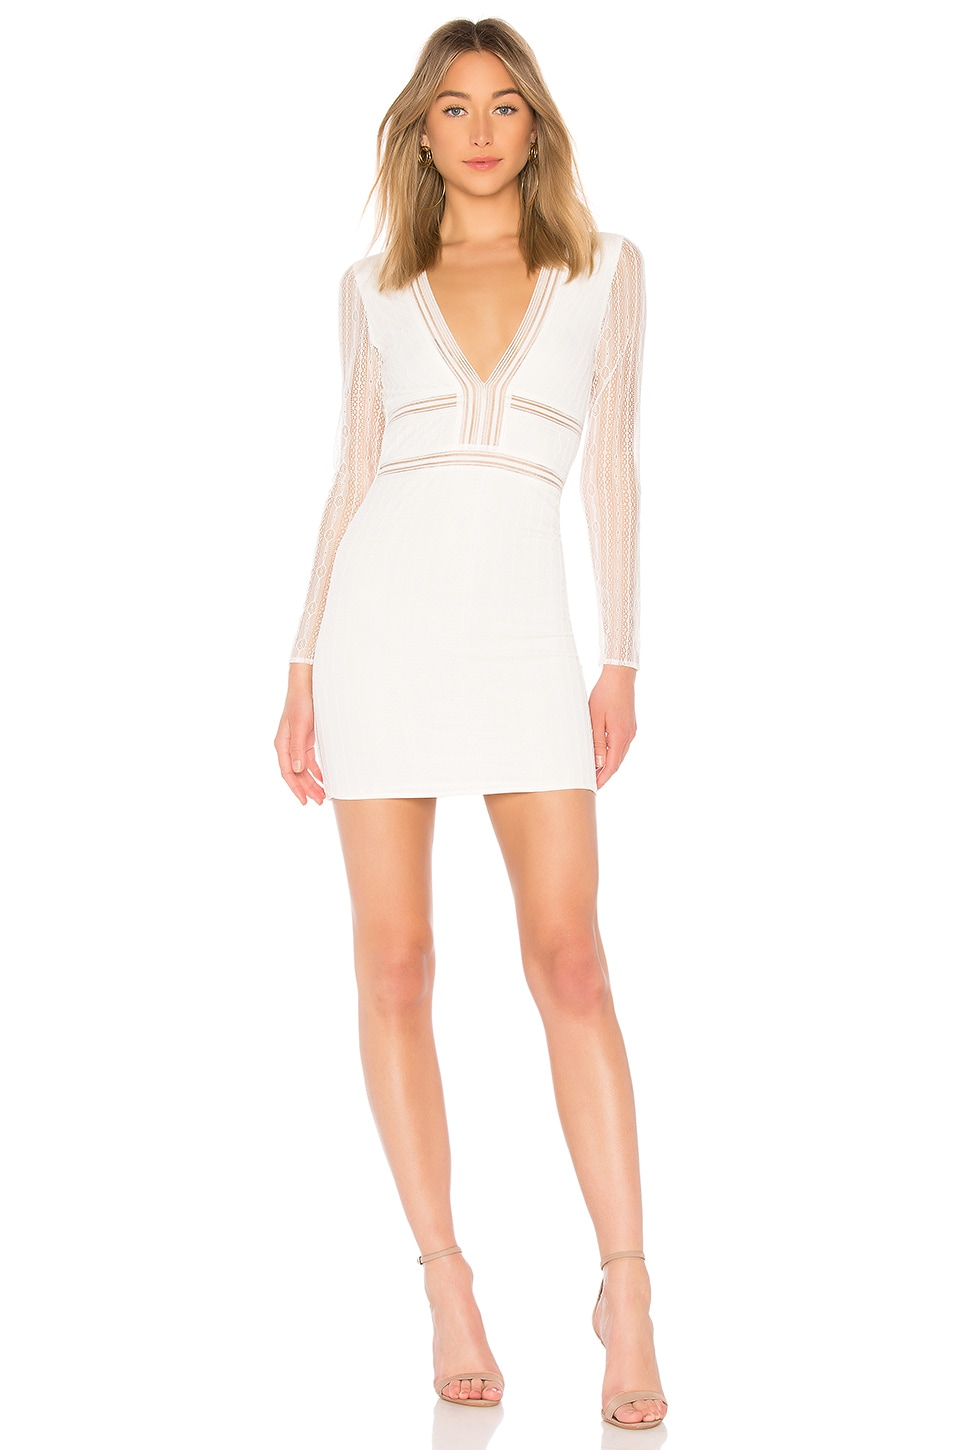 Lauri White Deep V Lace Bodycon